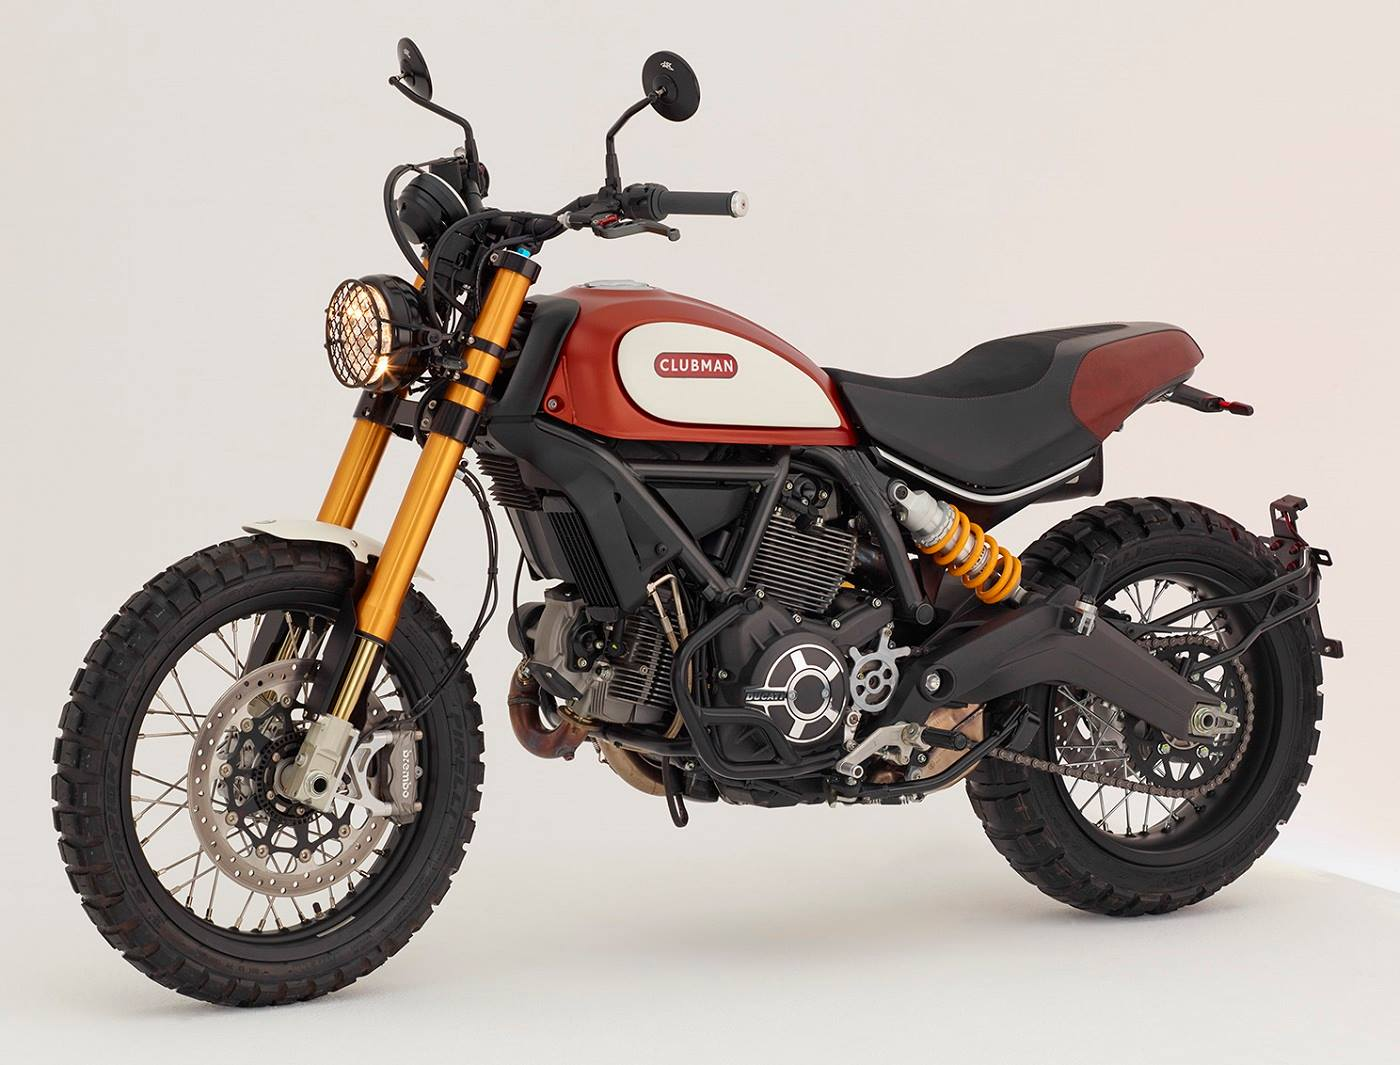 am i the only one who doesn't like the scrambler headlight